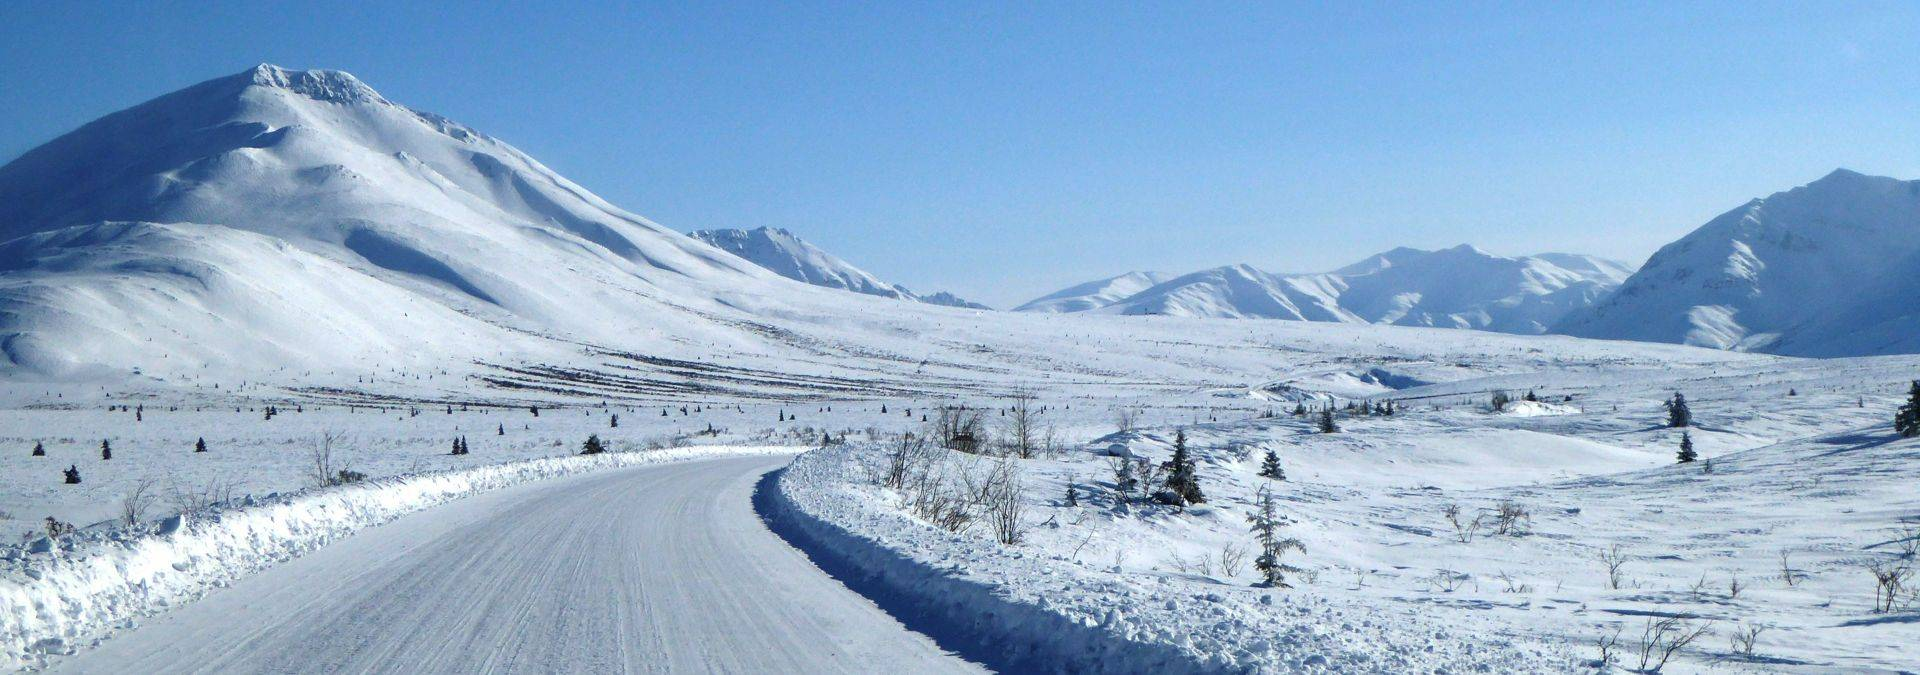 Dempster Highway Photo Credits Arctic Range Adventure Ltd